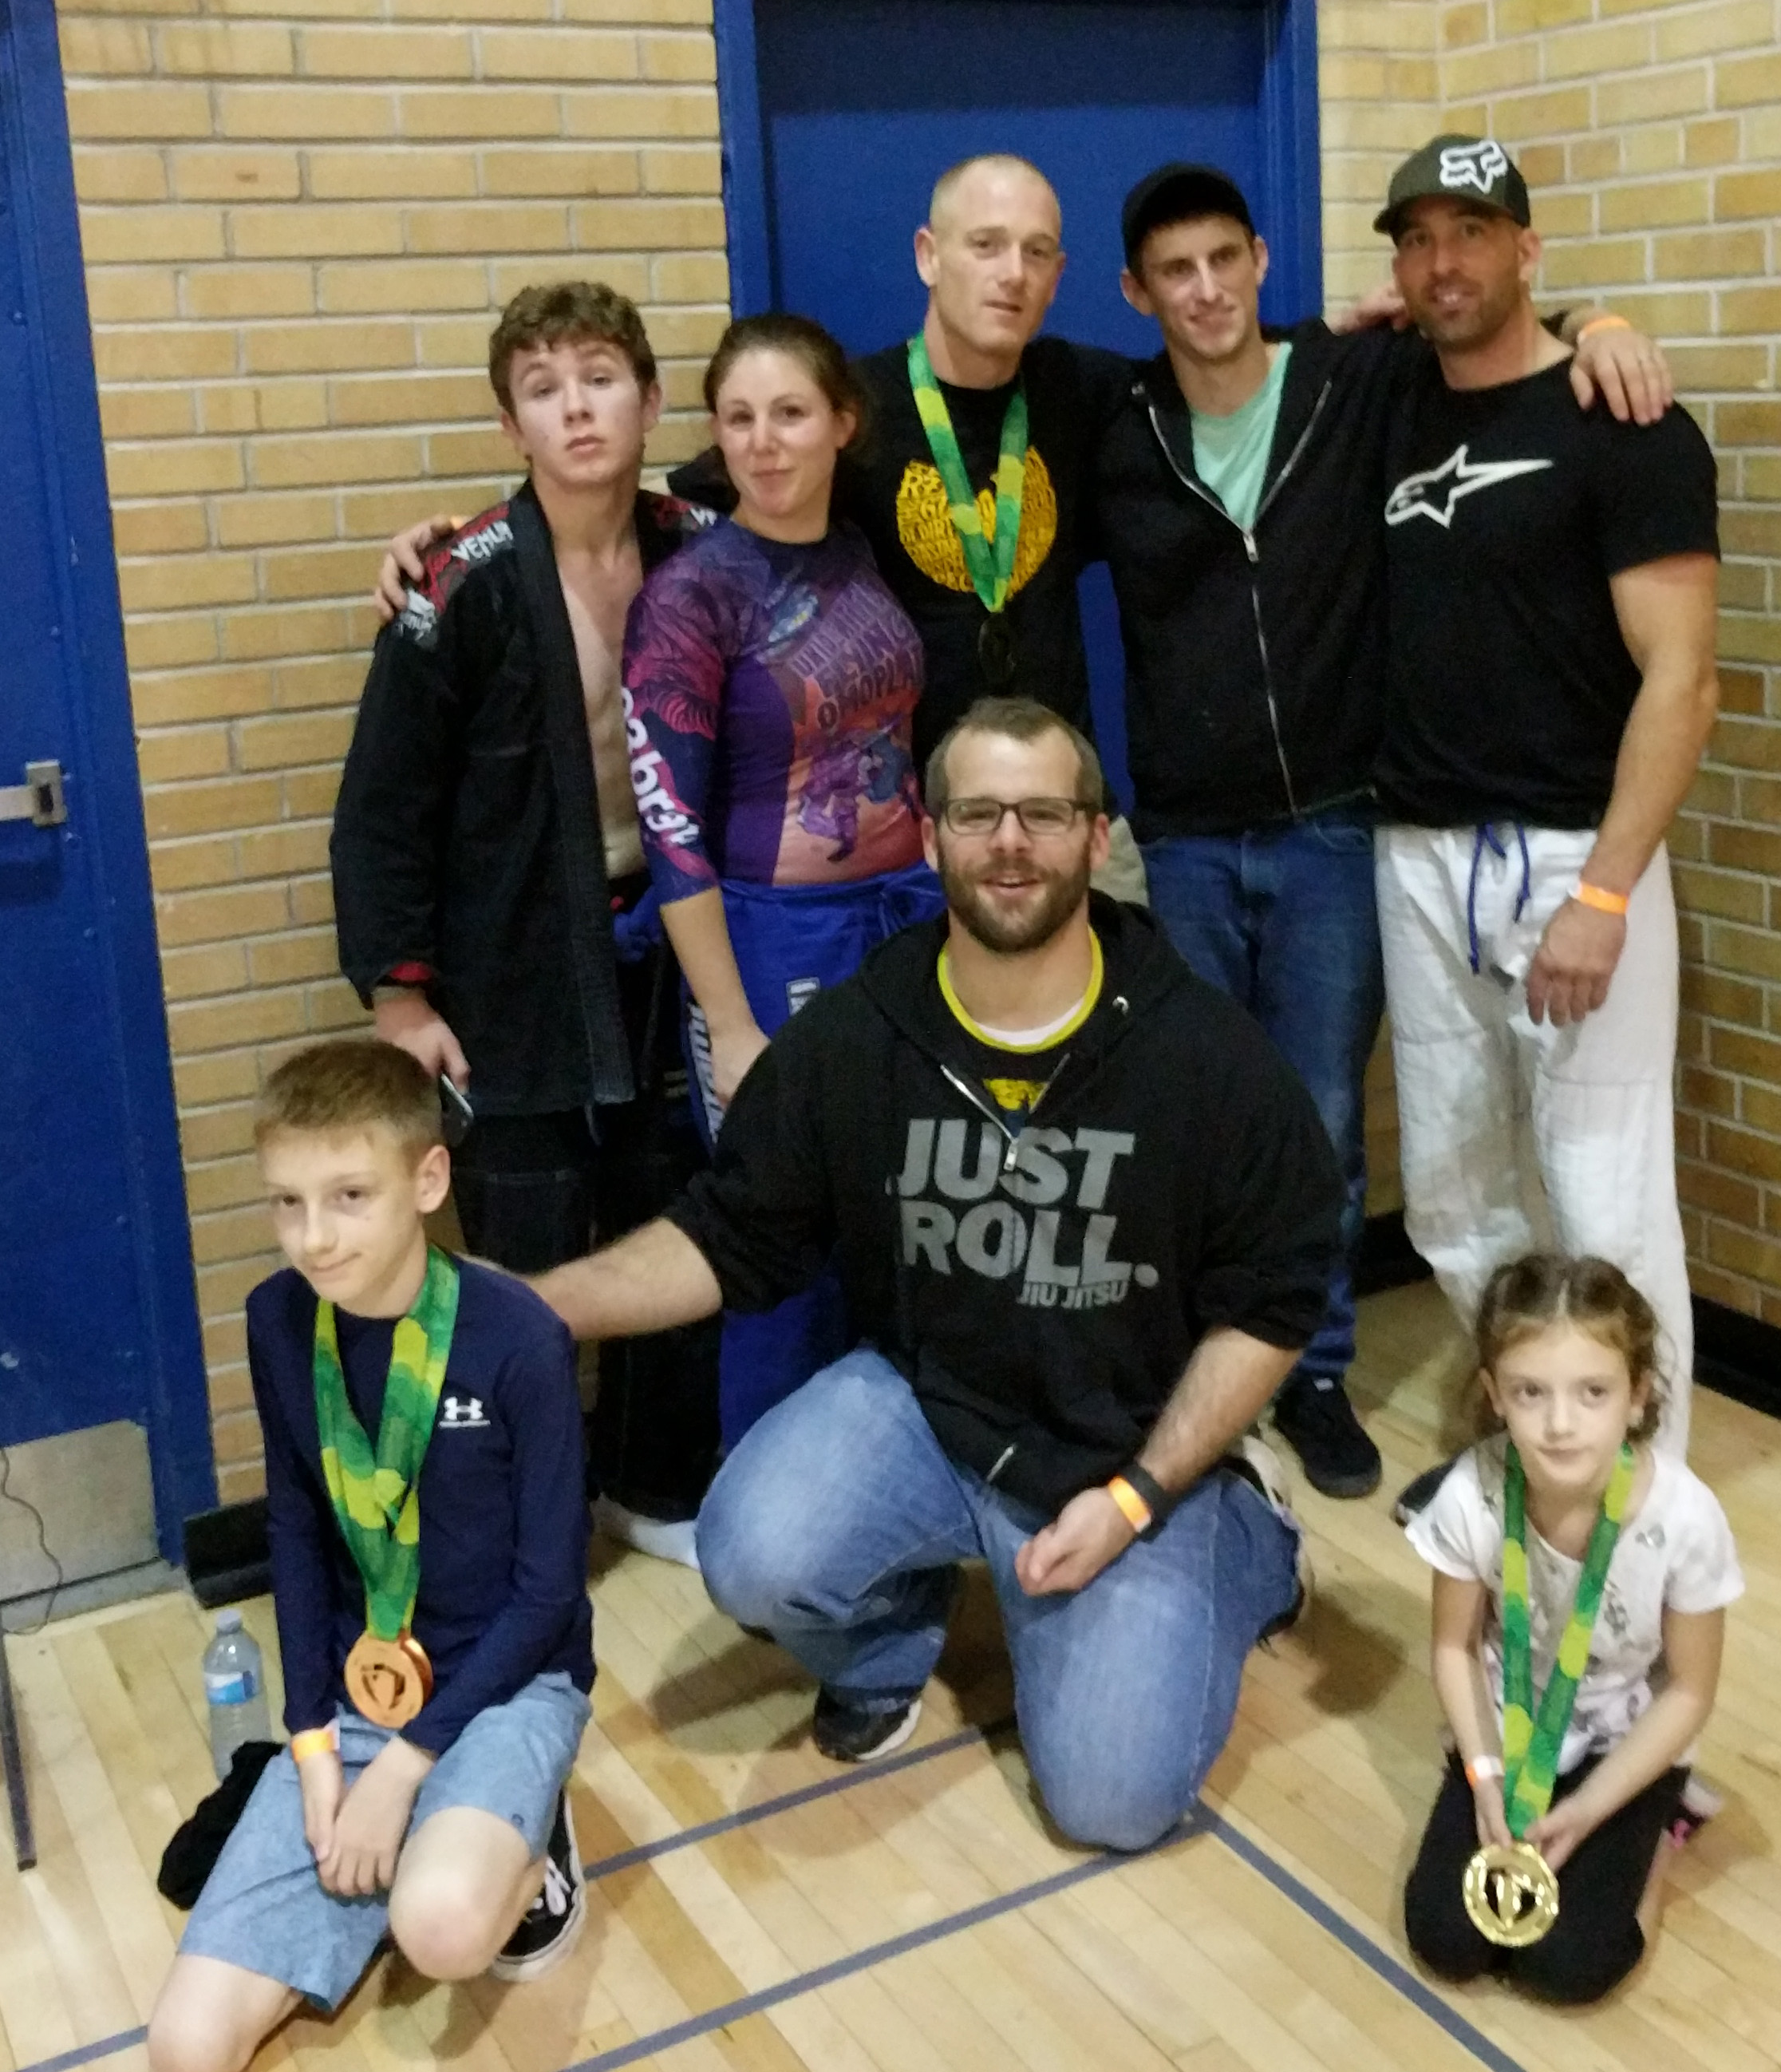 Results from Grappling Industries Toronto – Eris Martial